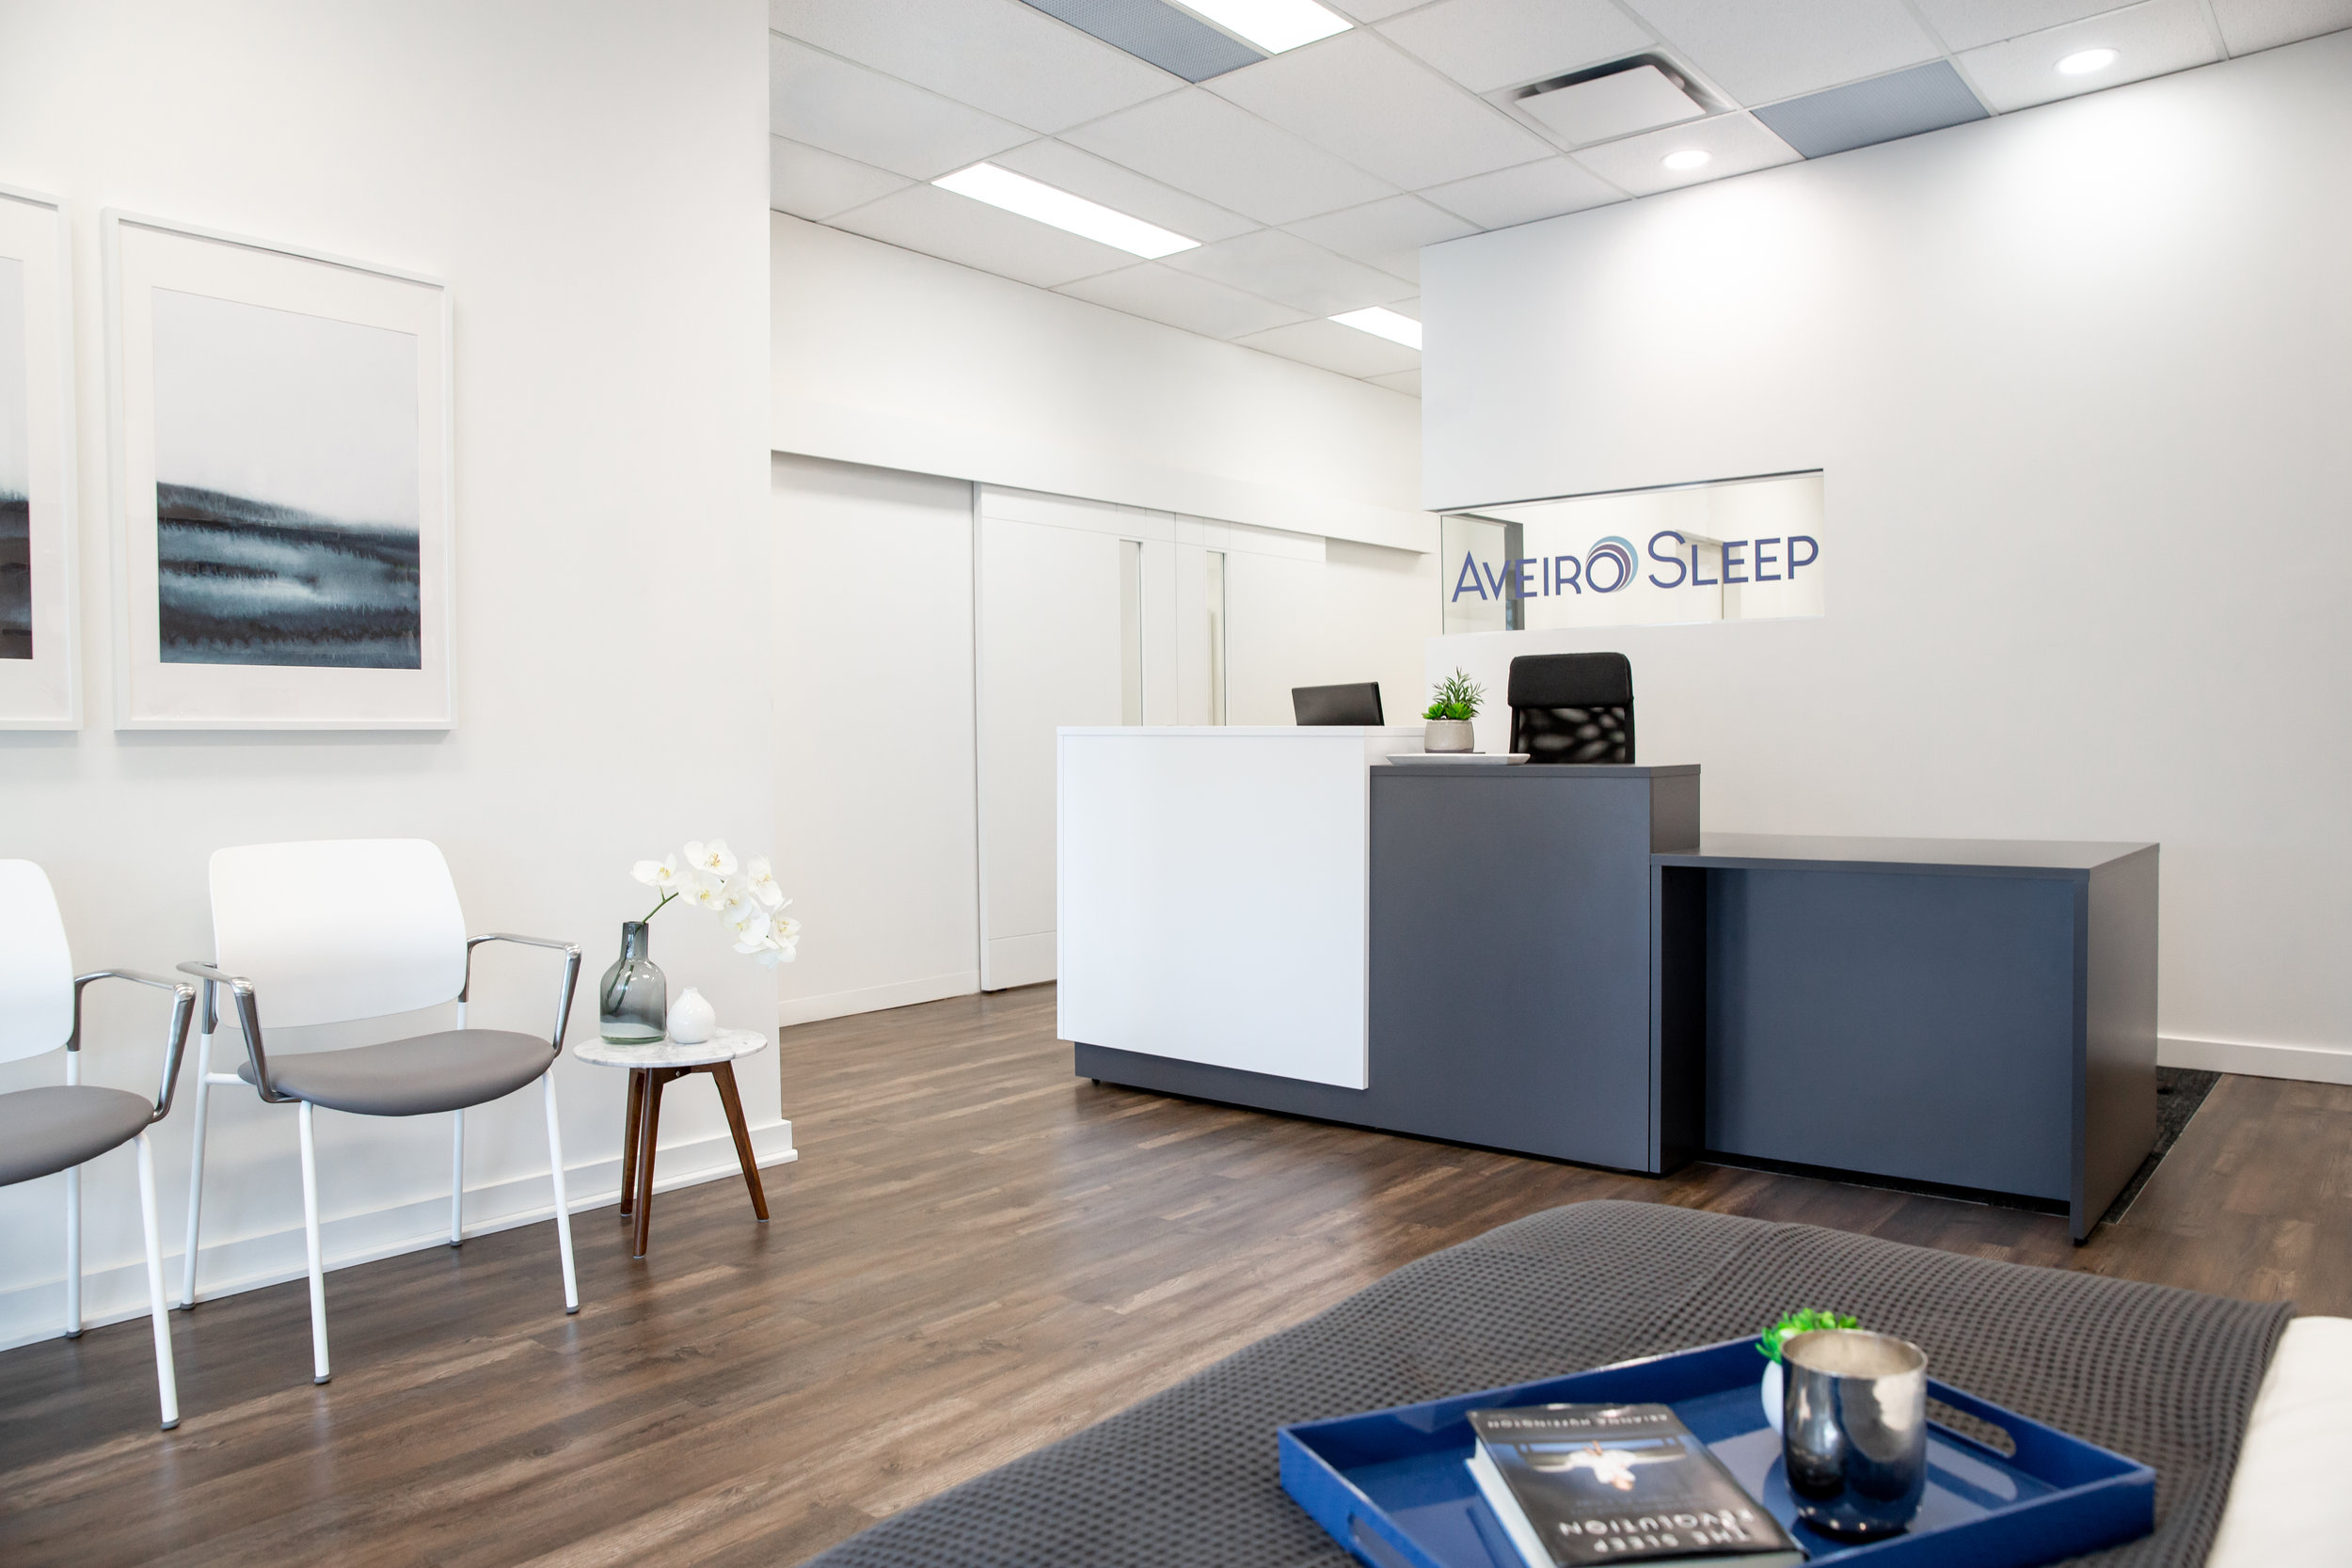 BLOCK-Commercial-Interior-Design-Calgary-Aveiro-Sleep-Office